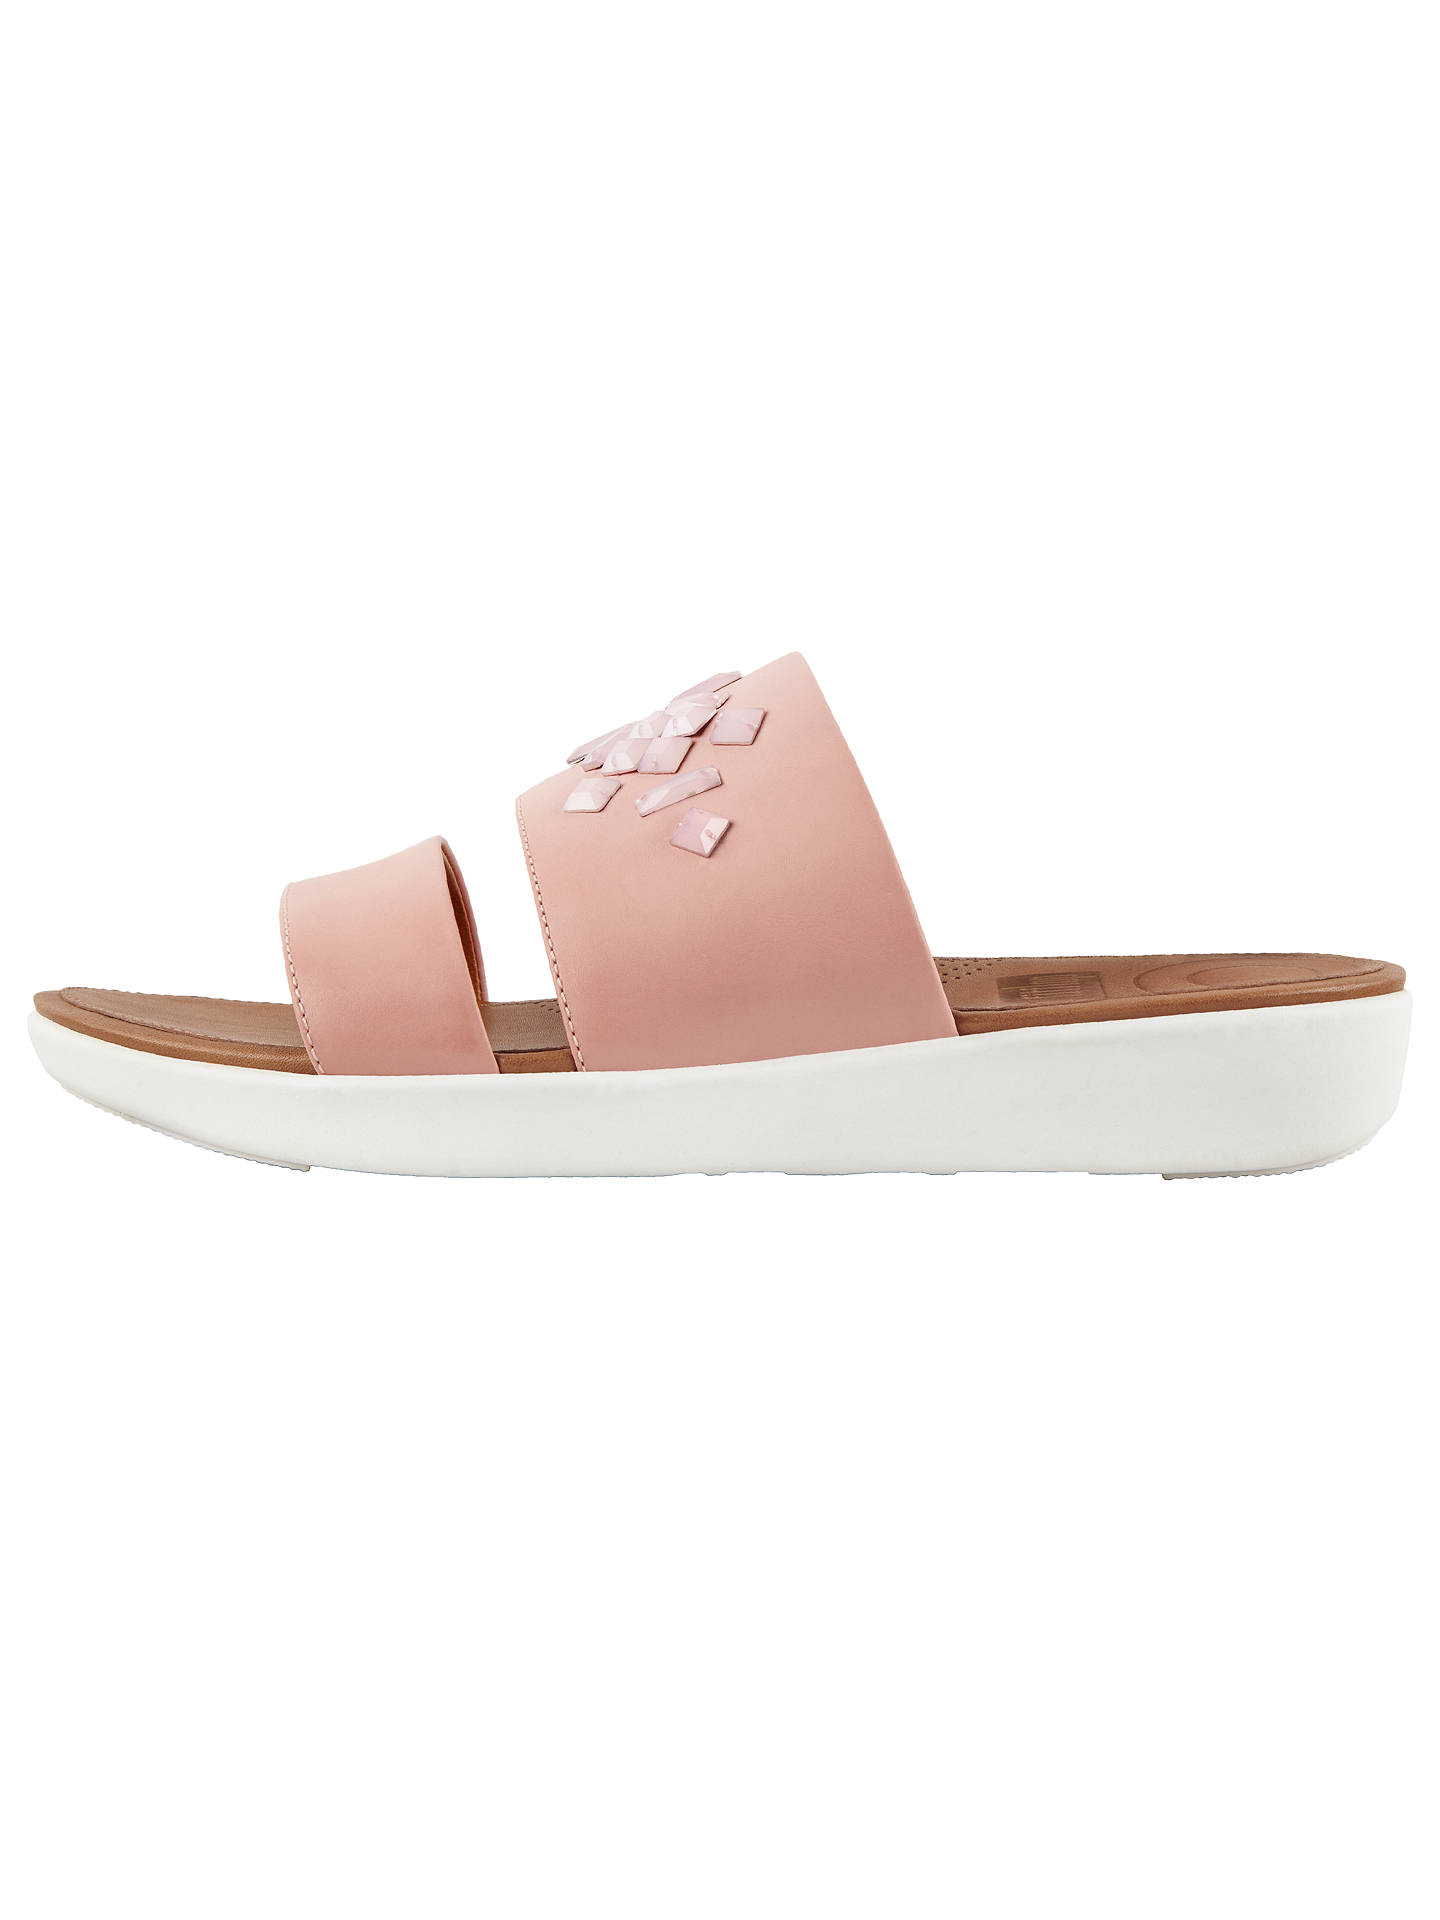 166e0f8ede6b FitFlop Delta Slider Sandals at John Lewis   Partners